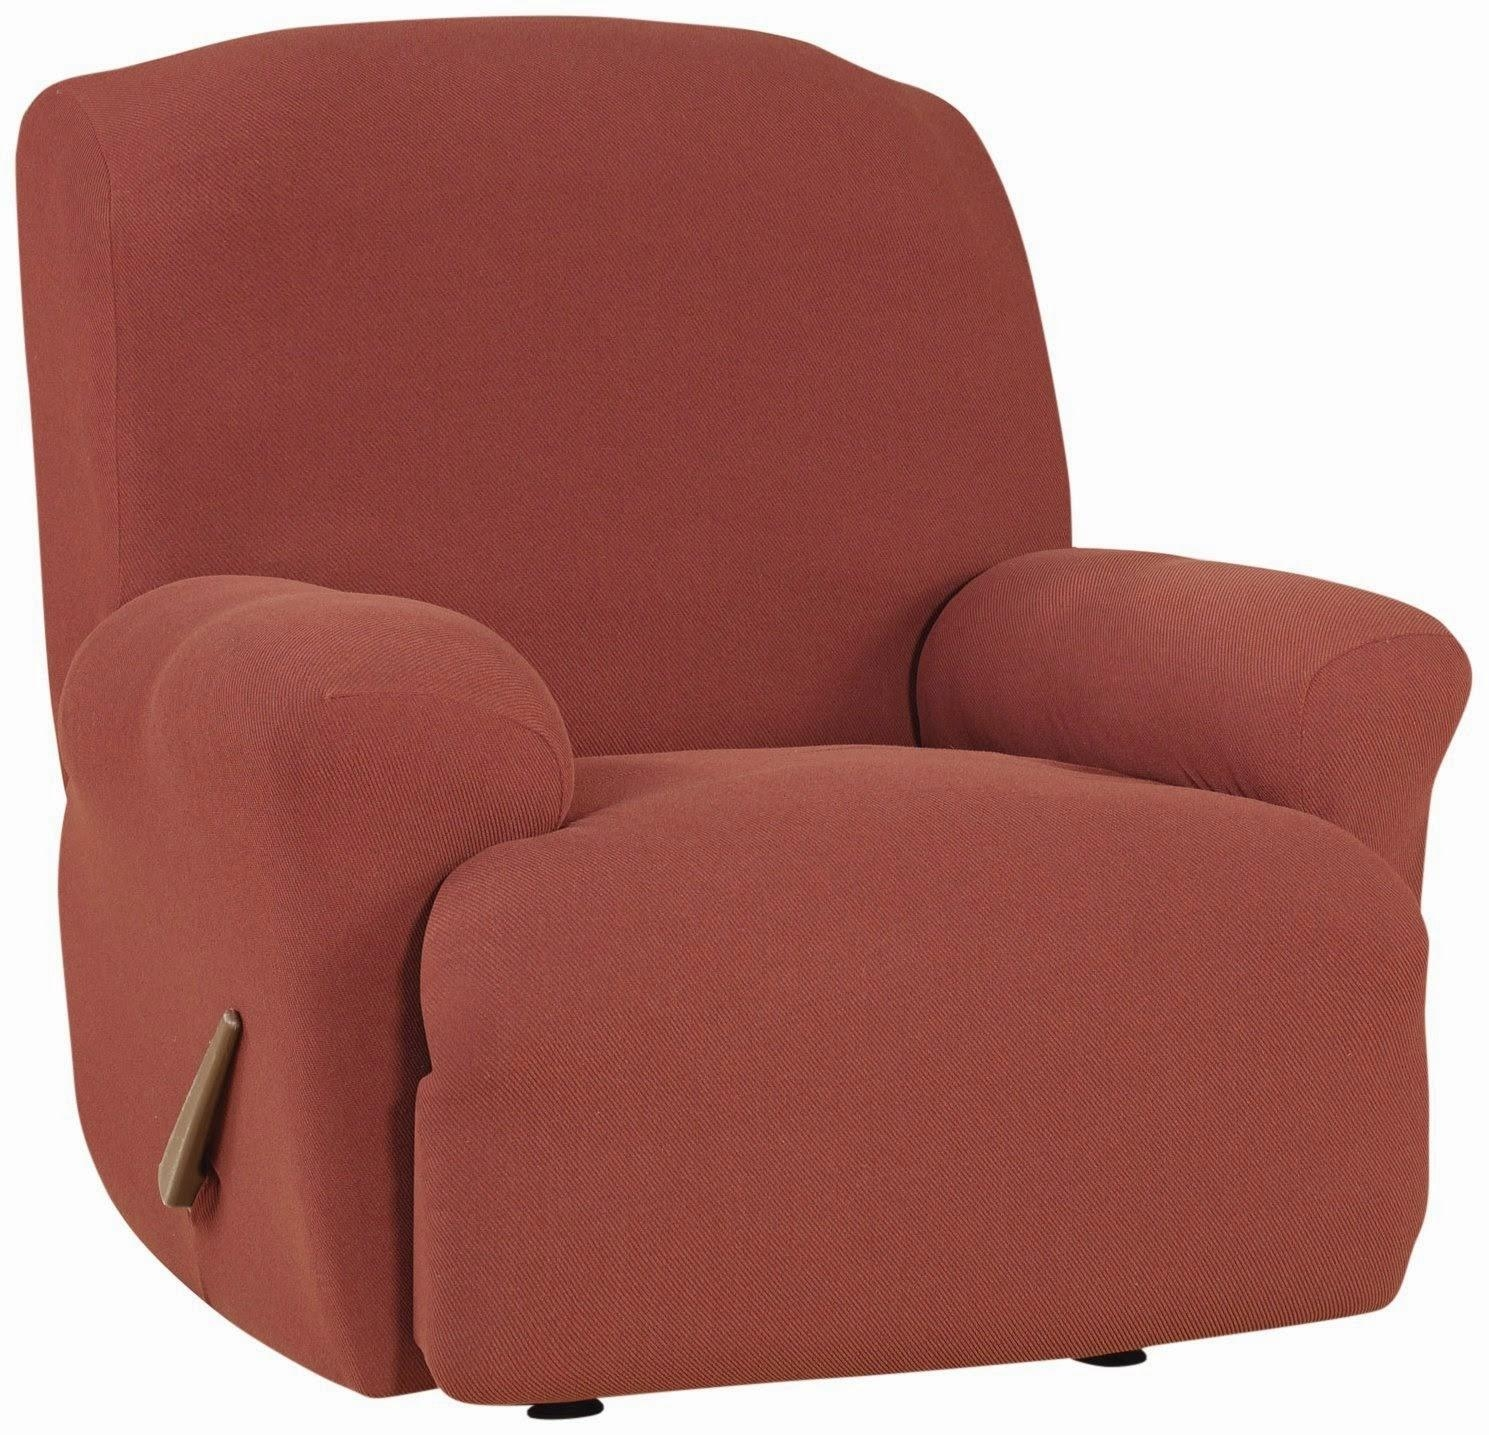 Sofa Recliner Sale: Recliner Sofa Slipcovers Walmart Intended For Slipcover For Recliner Sofas (Image 16 of 20)